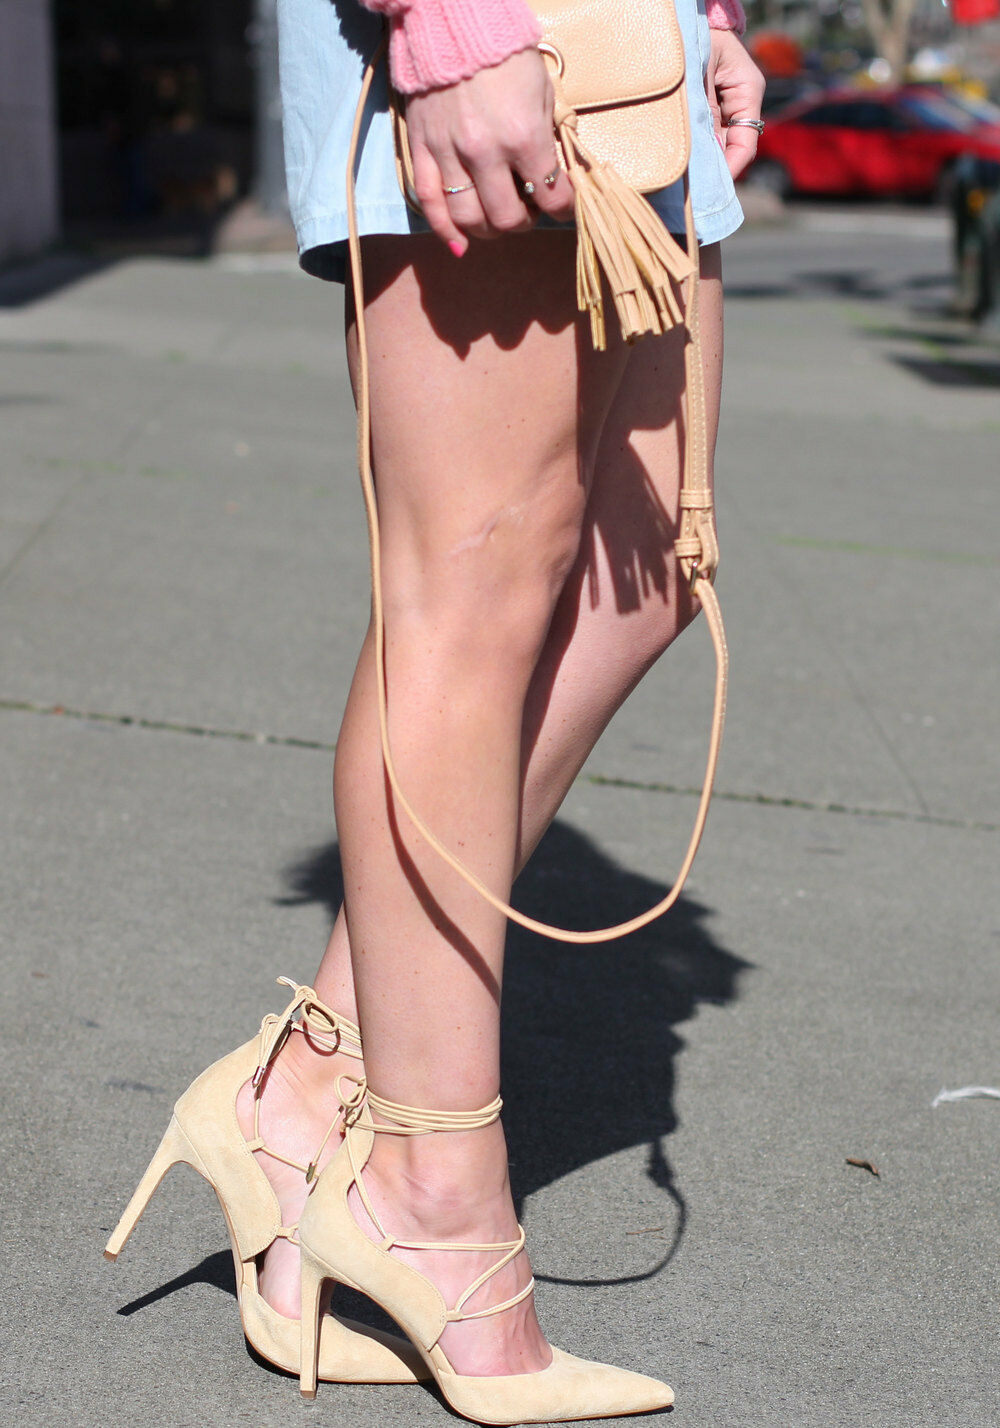 SAM EDELMAN EDELMAN SAM DAYNA LACE UP PUMPS 7.5 Nude Suede Pointed Toe Heels Trend Schuhes 906425